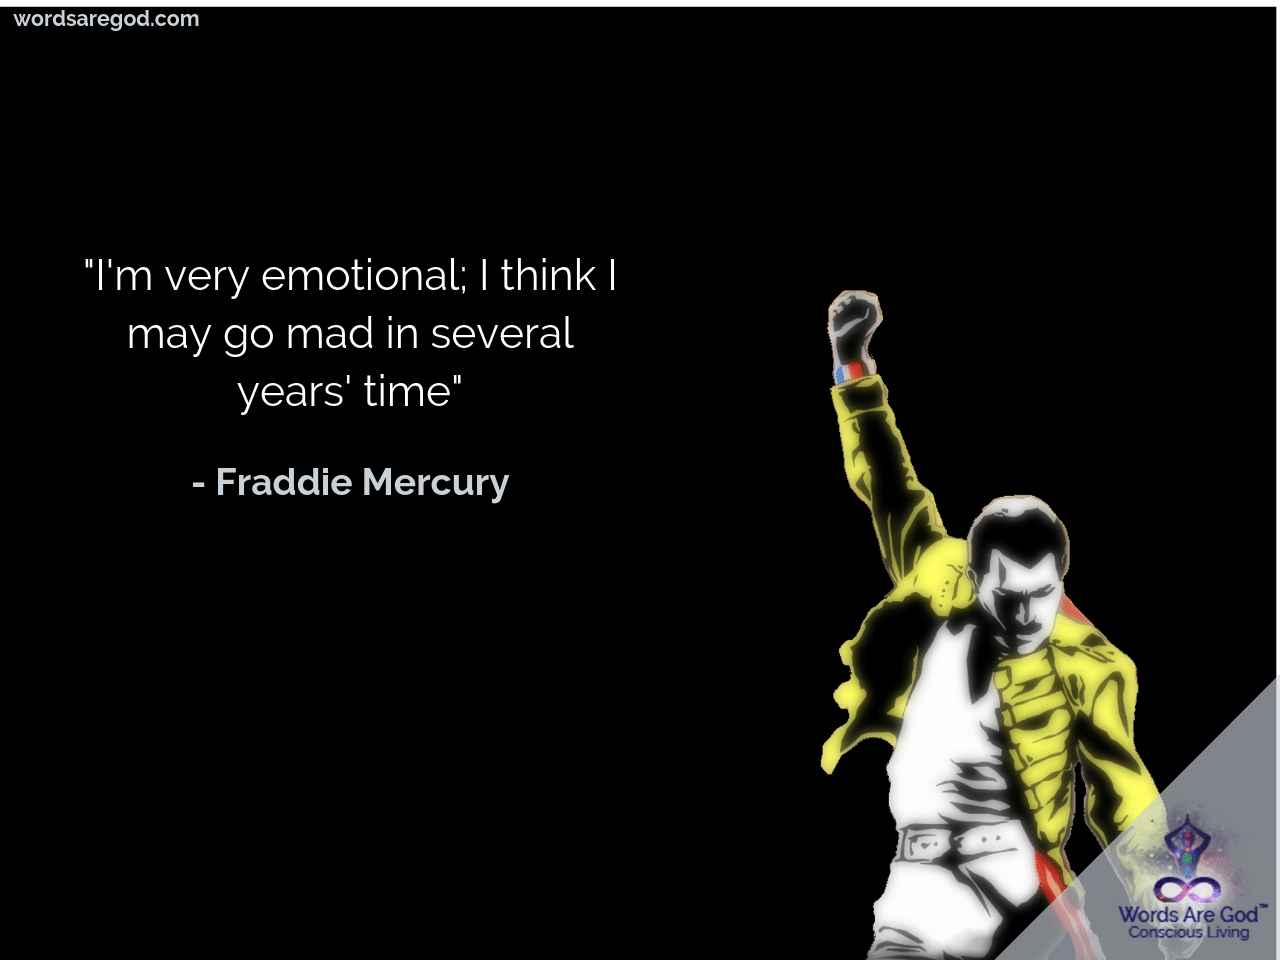 Freddie Mercury Best quote by Fraddie Mercury